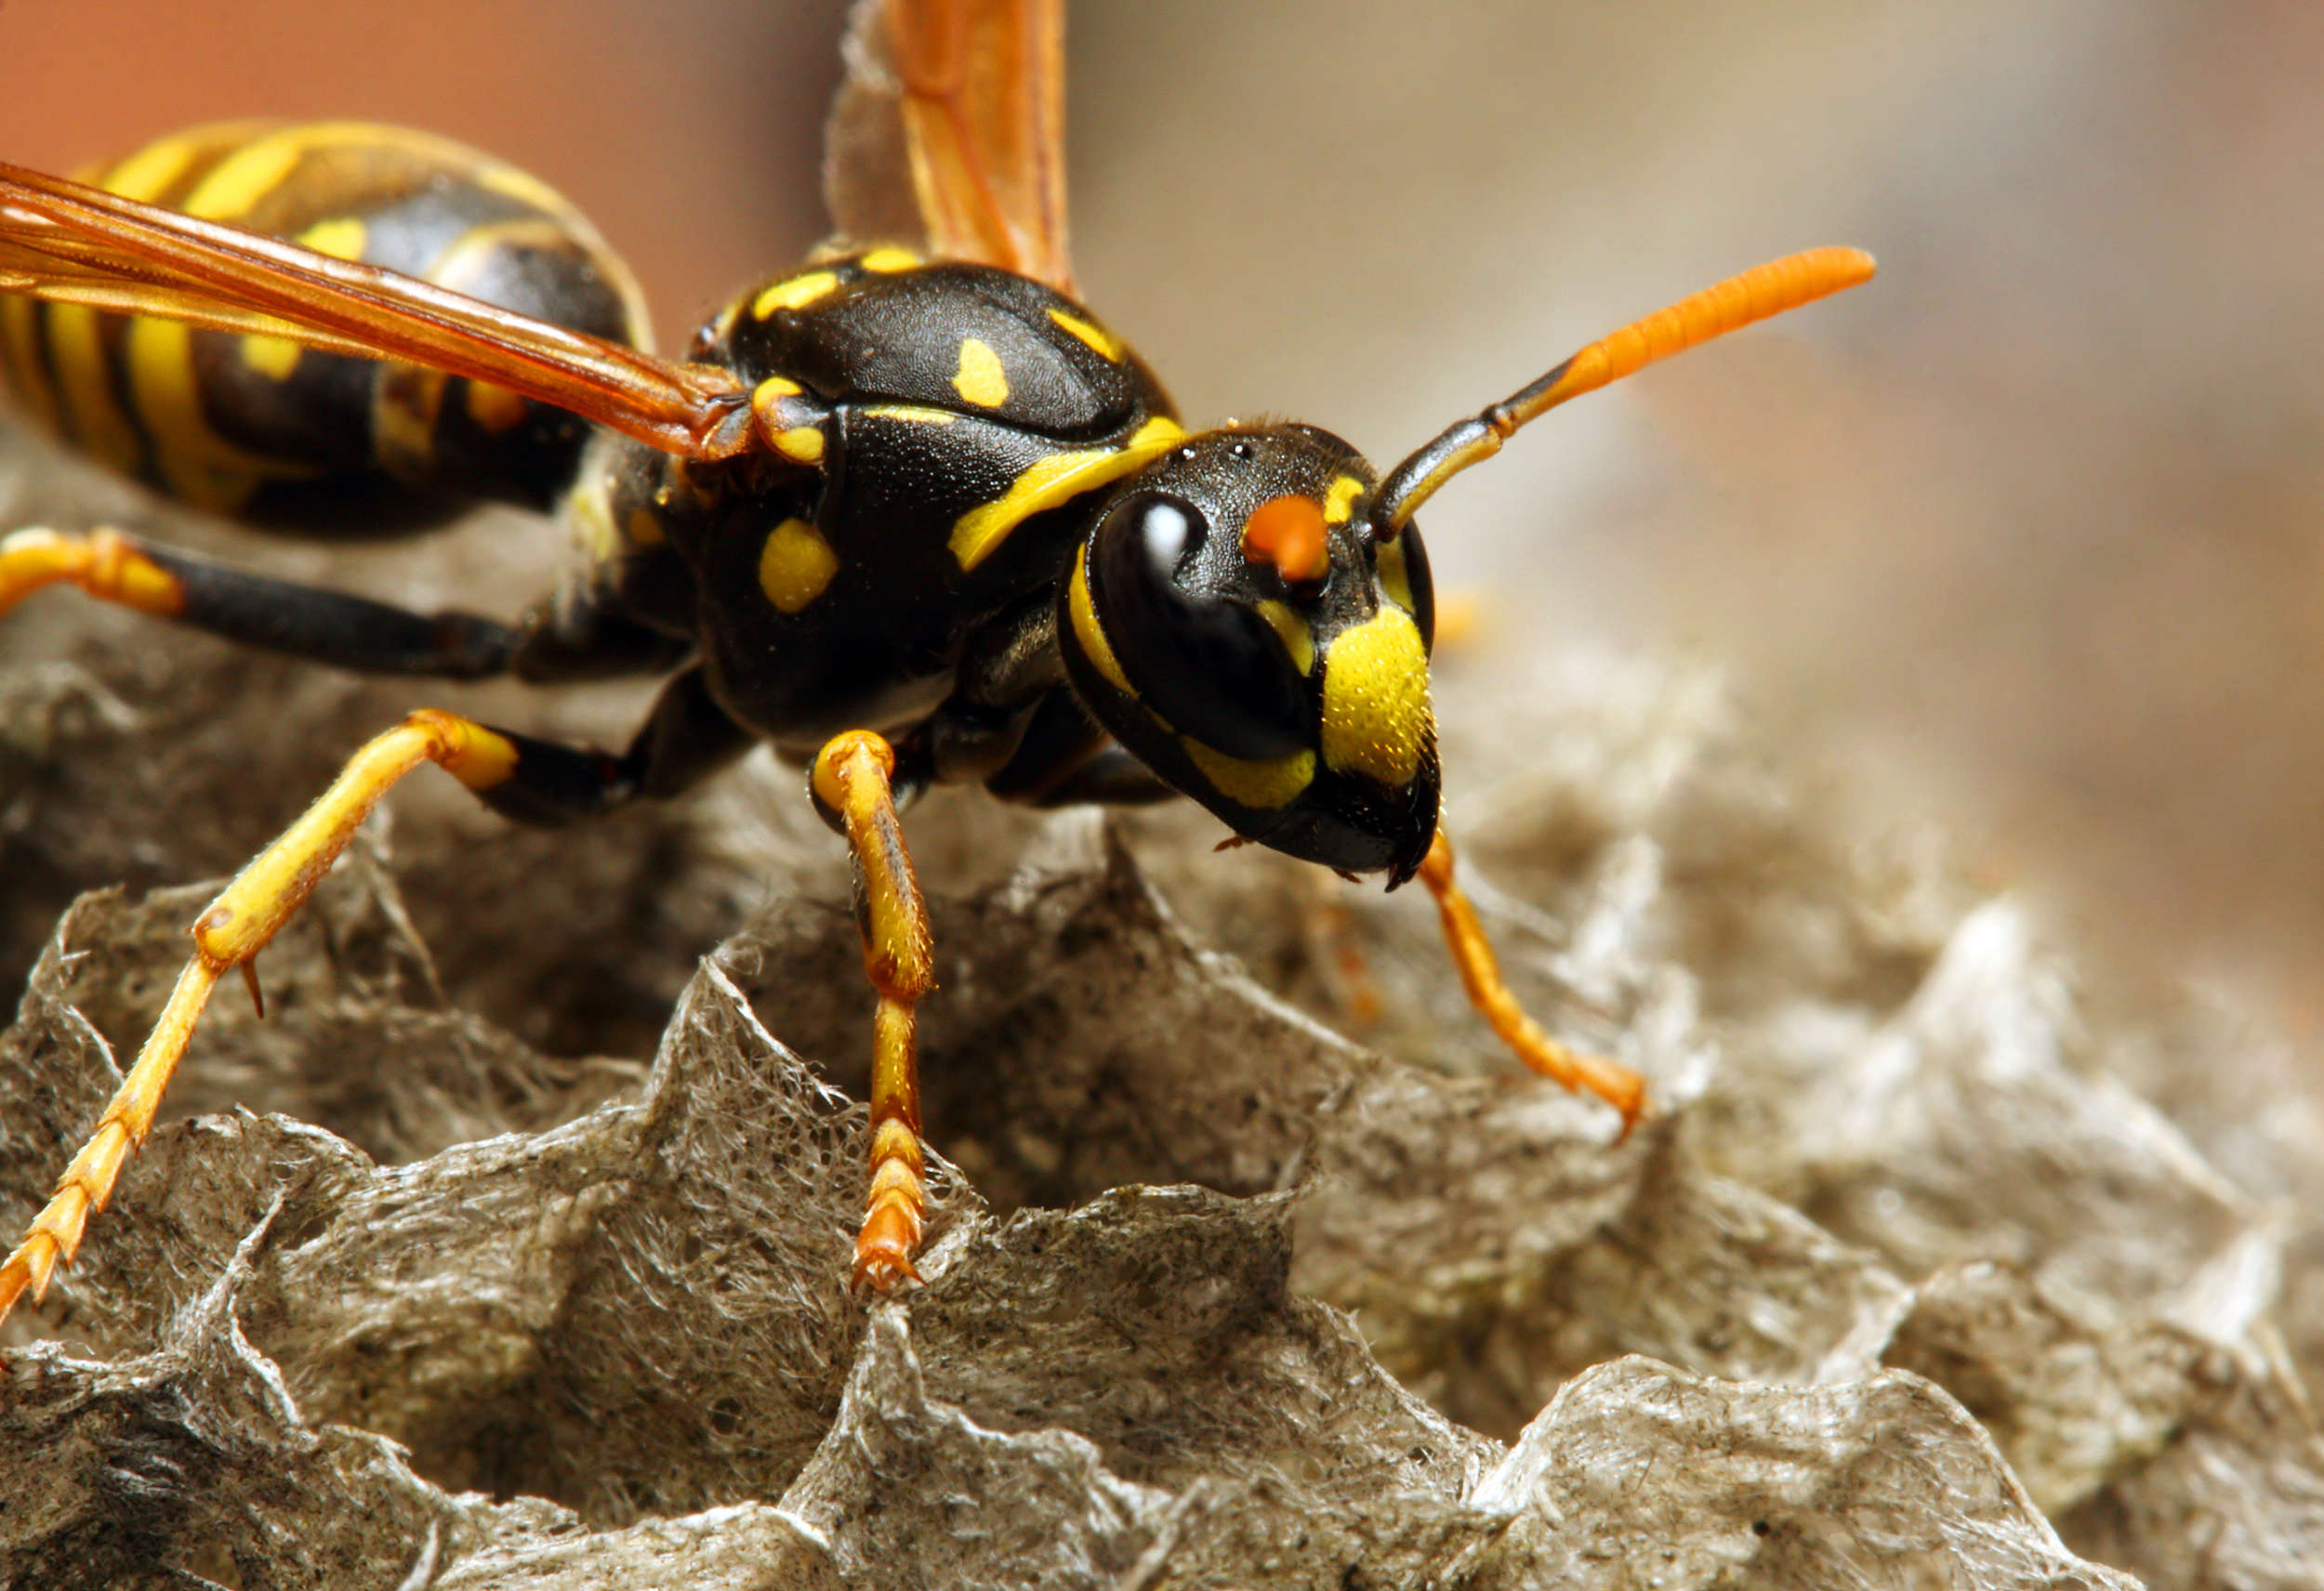 The Common Wasp